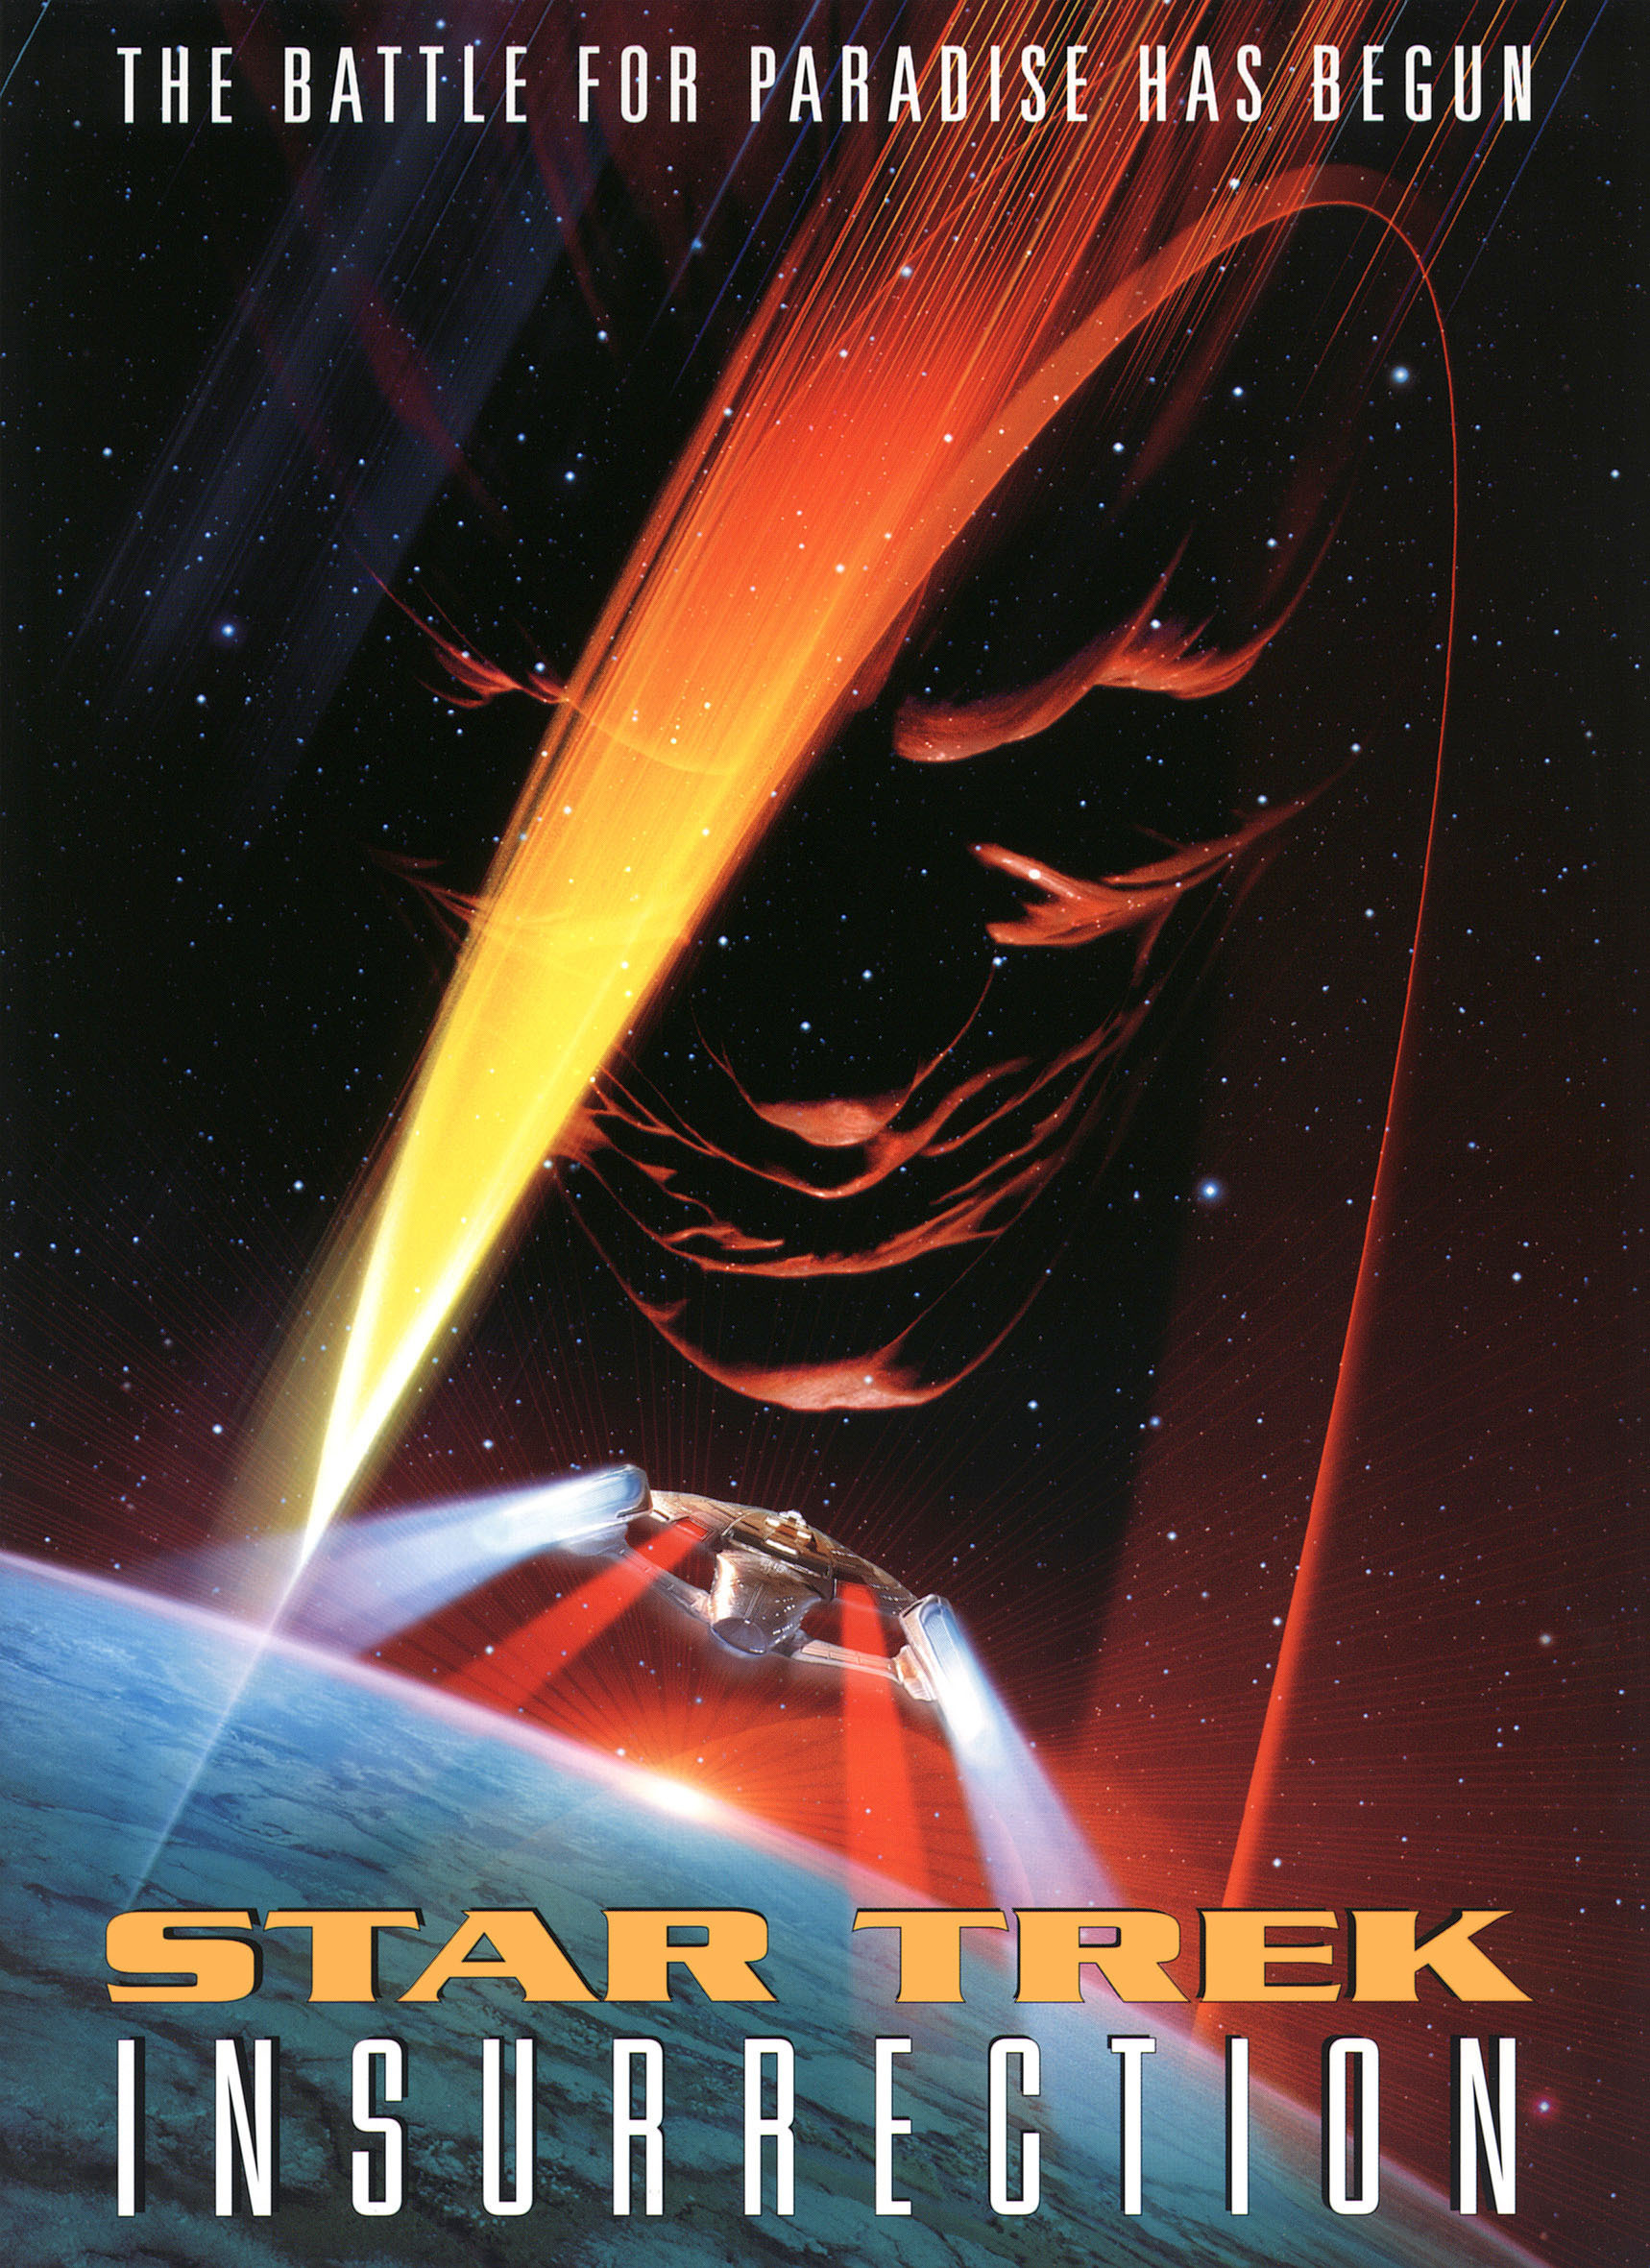 """Star Trek Insurrection"" poster."